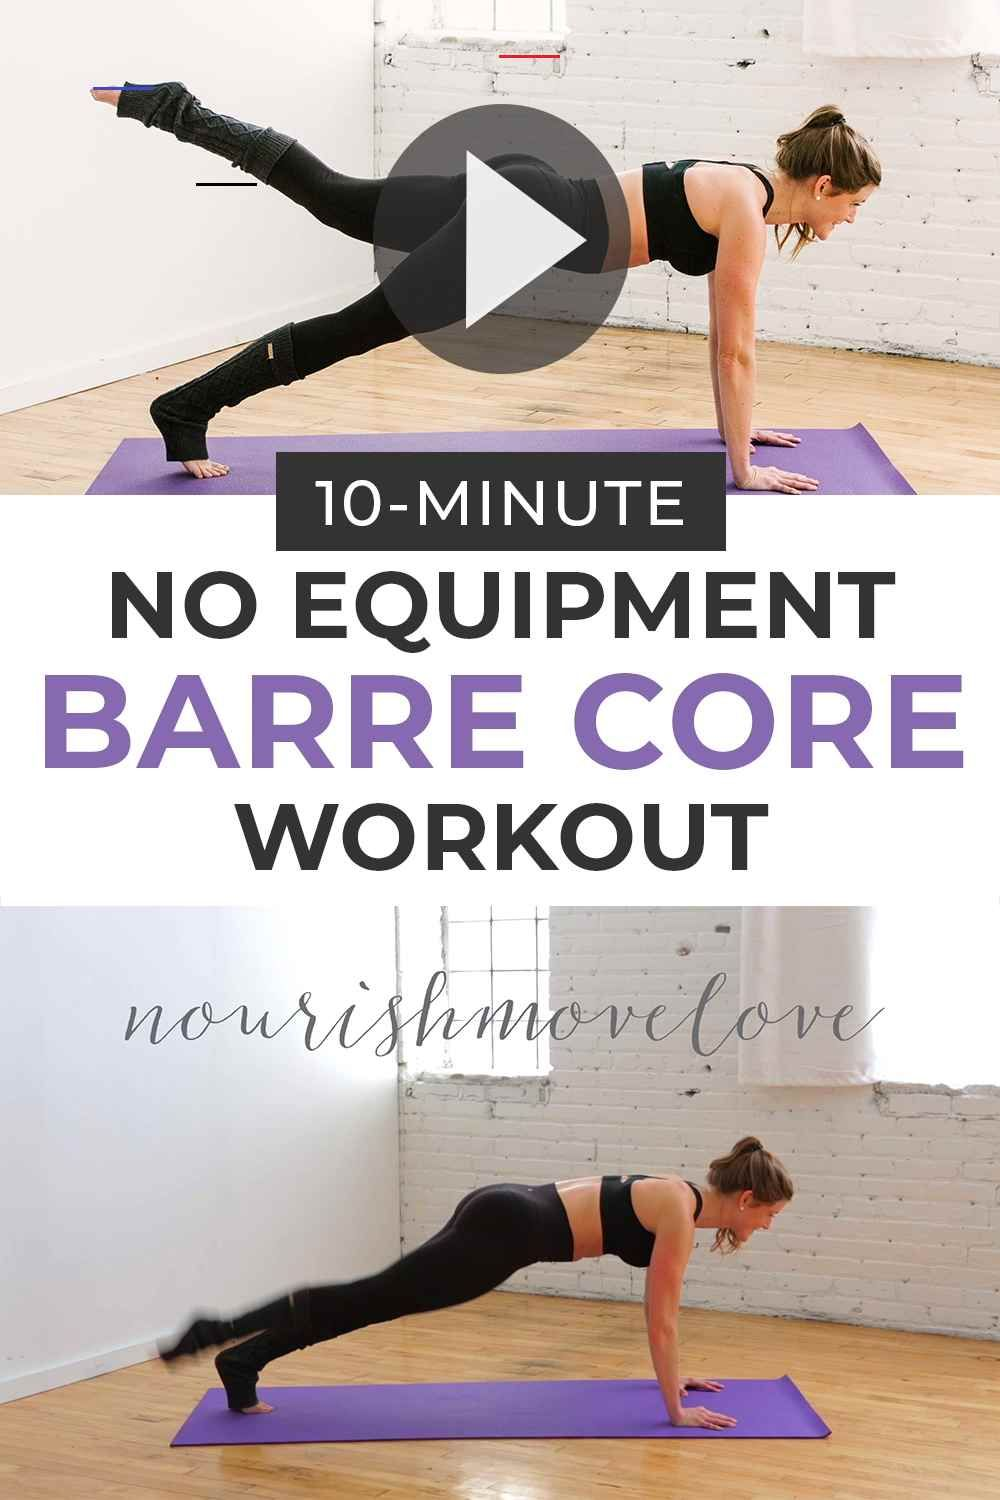 10 Minute Barre Workout Pilatesworkout Take It Down To The Mat For This 10 Minute Barre Core Workout In 2020 Workout Bauch Oberkorper Trainieren Training Zu Hause